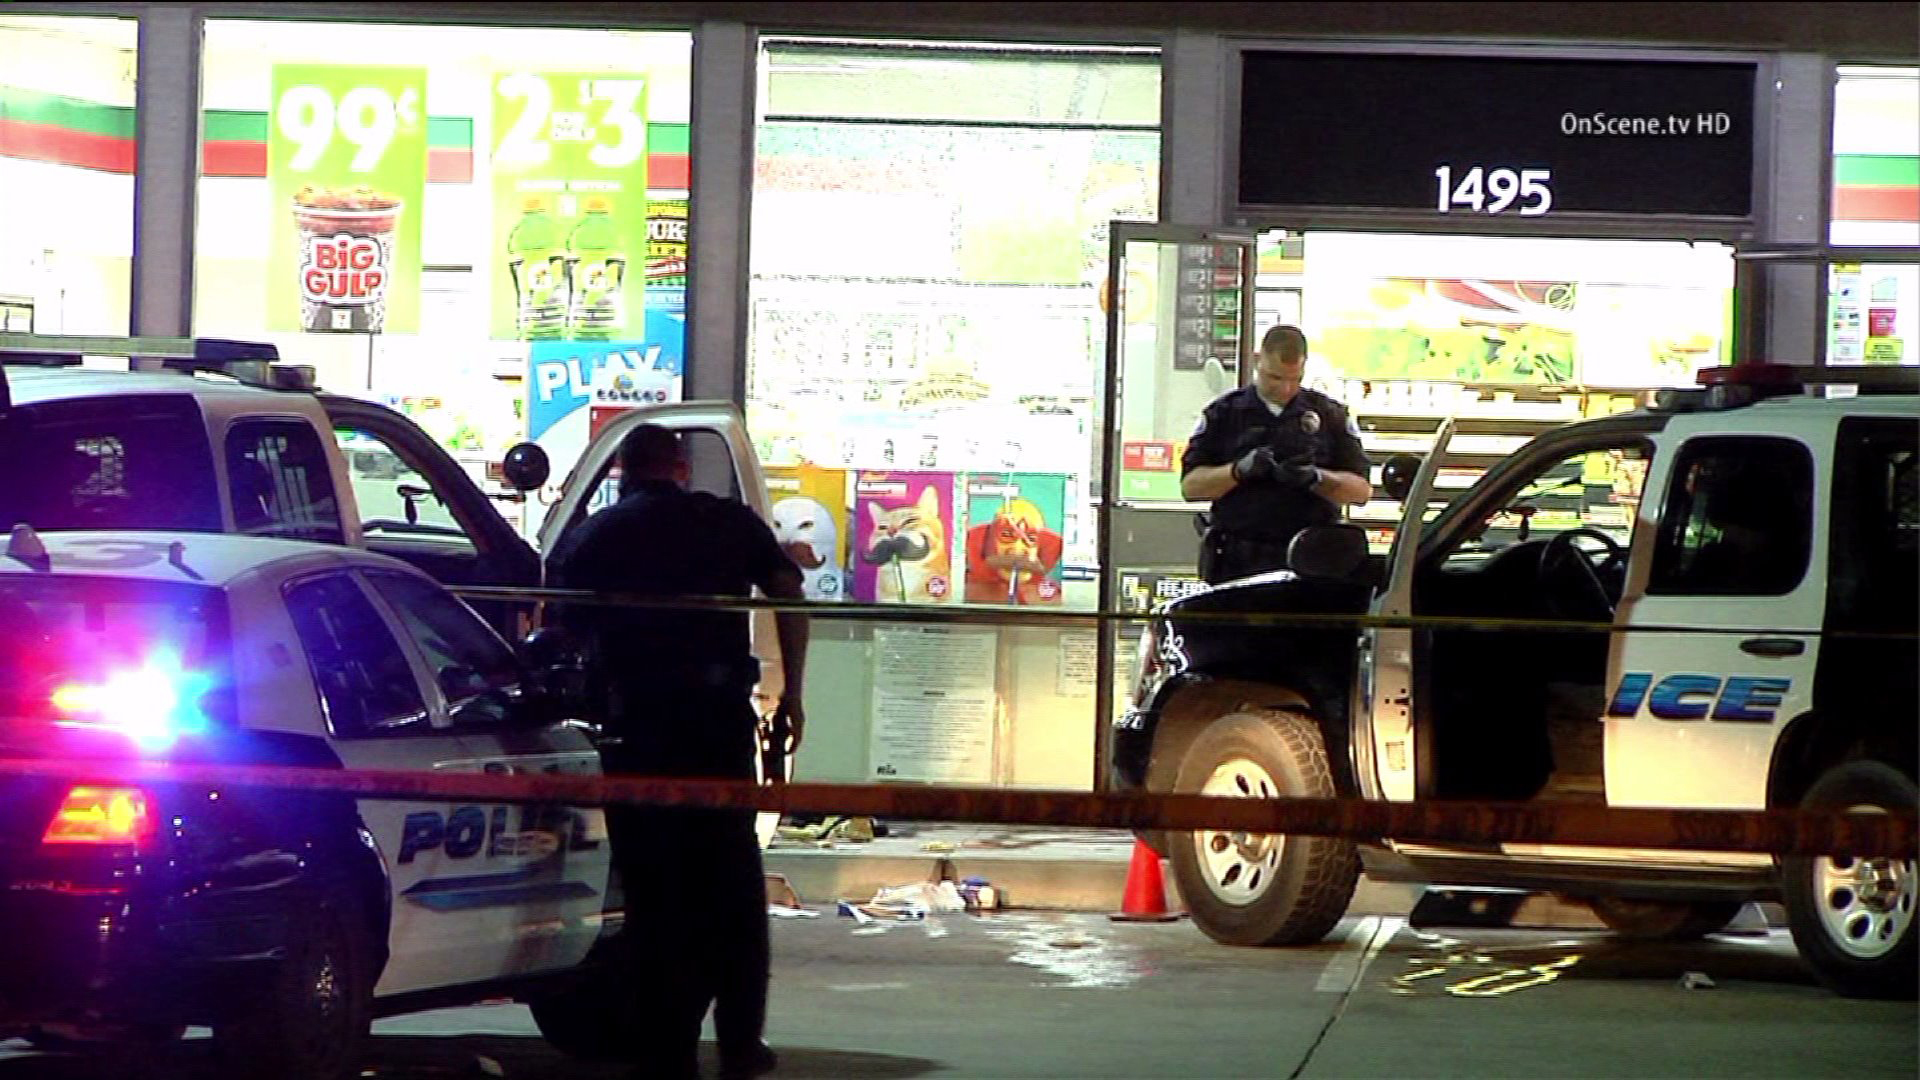 A man died after being shot by police at a Newport Beach 7-Eleven on May 29, 2014. (Credit: OnScene TV)